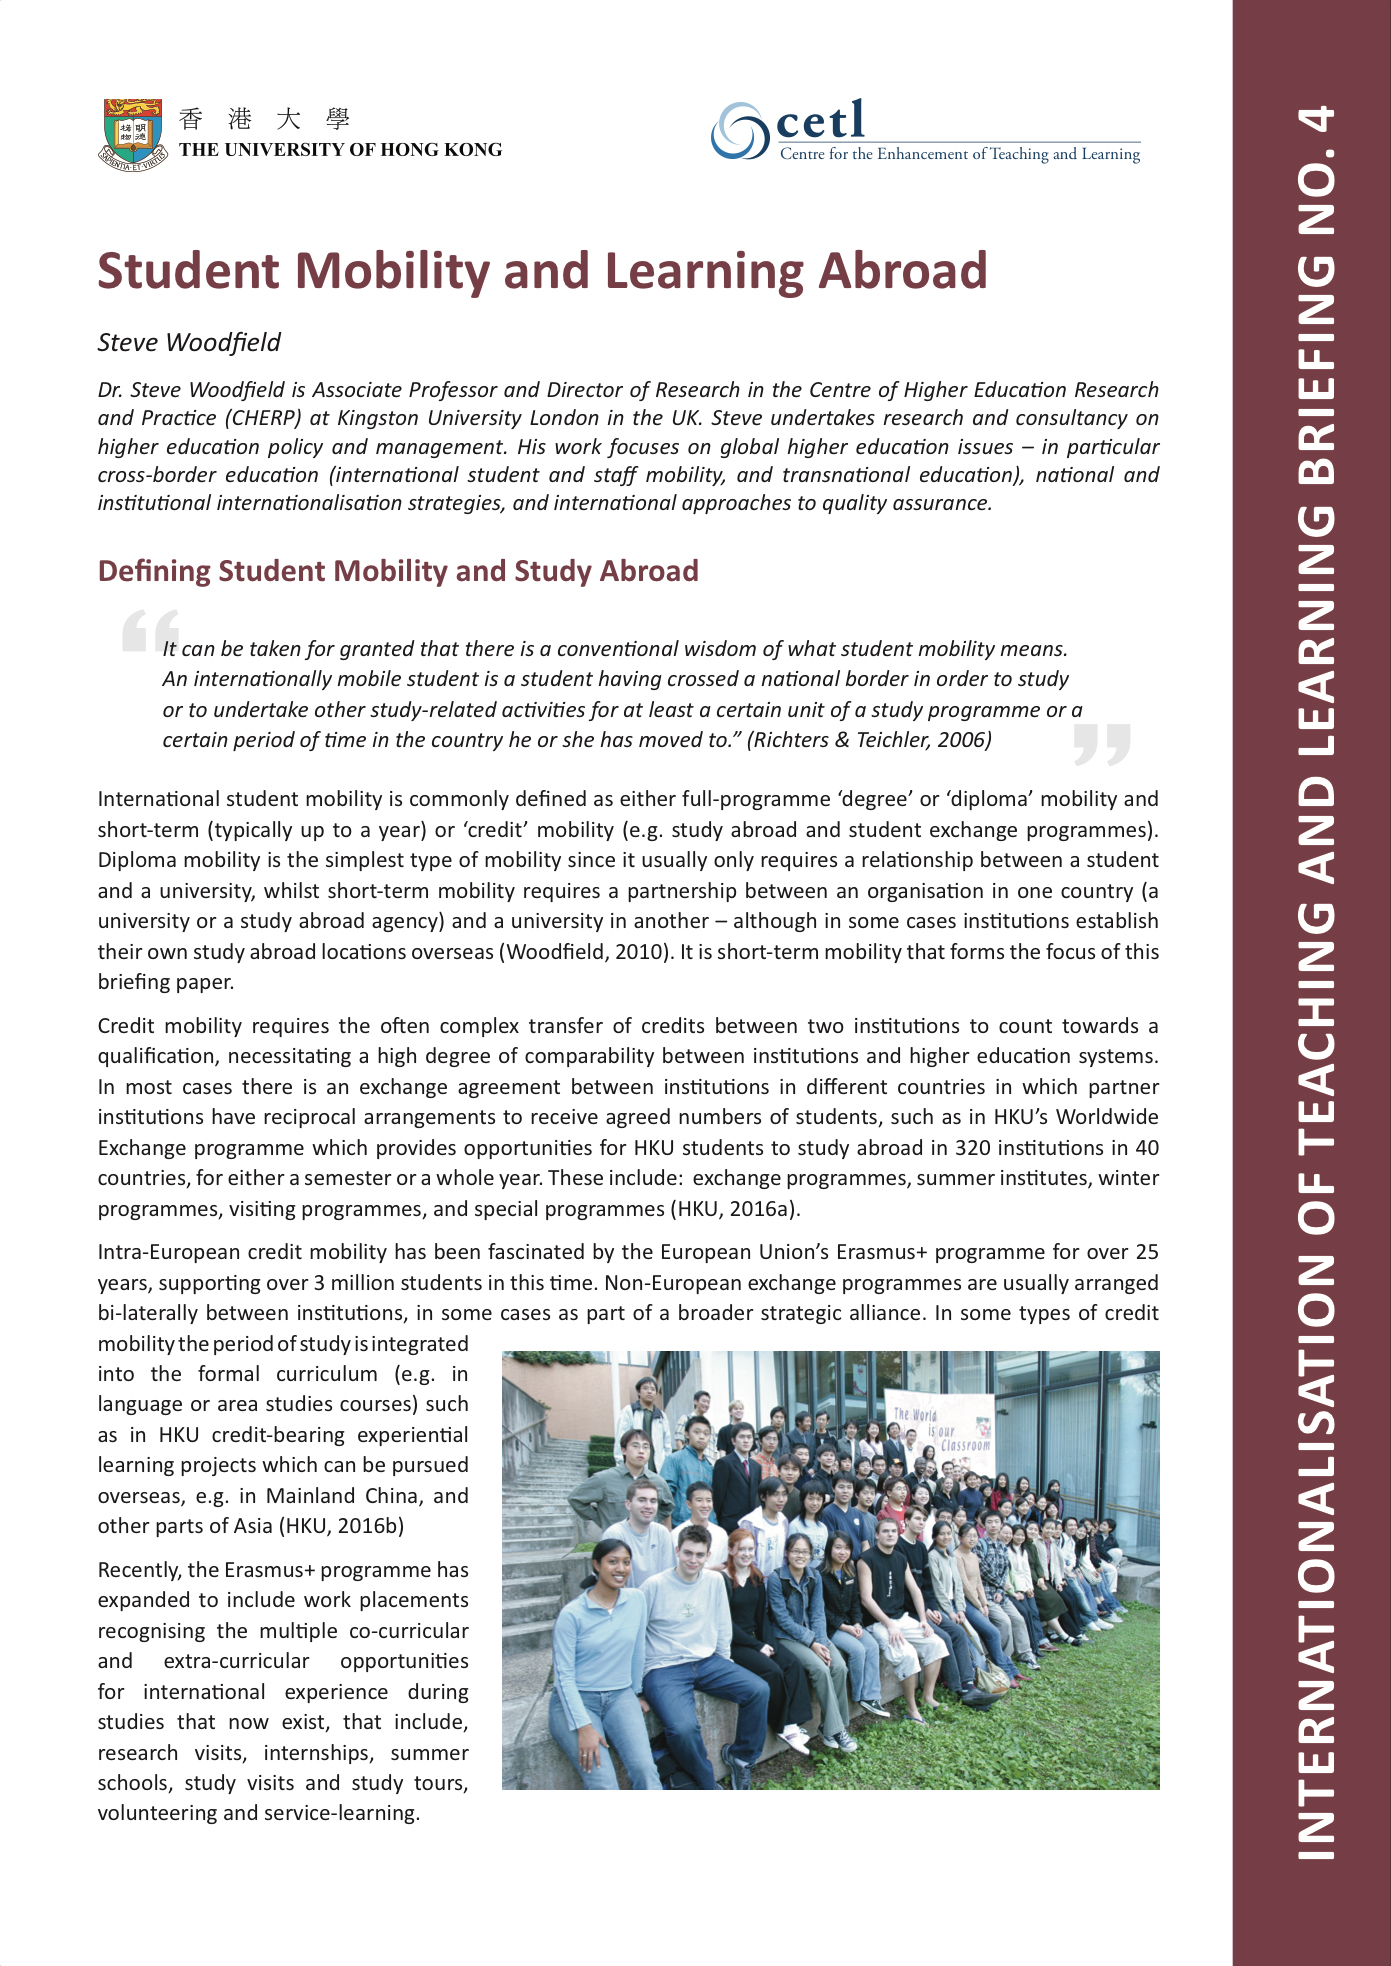 4. Student Mobility and Learning Abroad